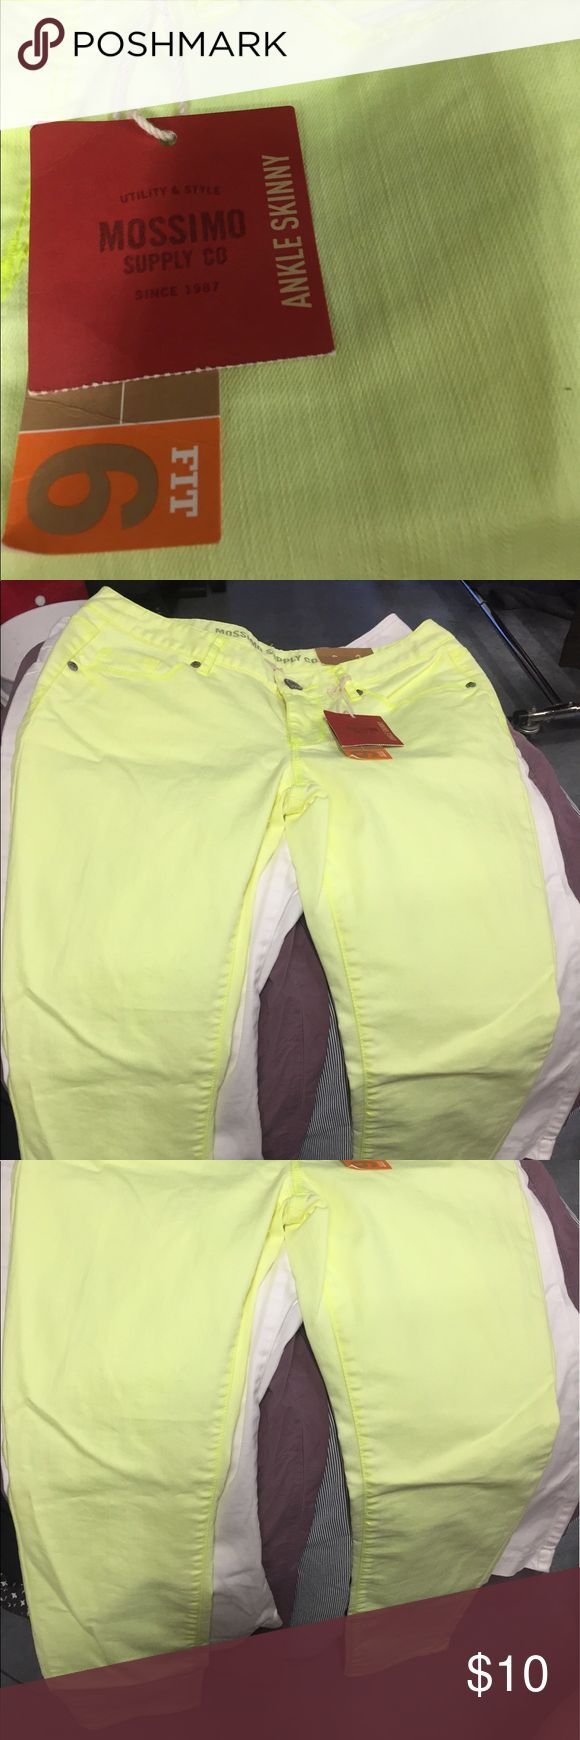 Mossimo skinny ankle length neon jeans New with tags Mossimo Supply Co. Jeans Ankle & Cropped